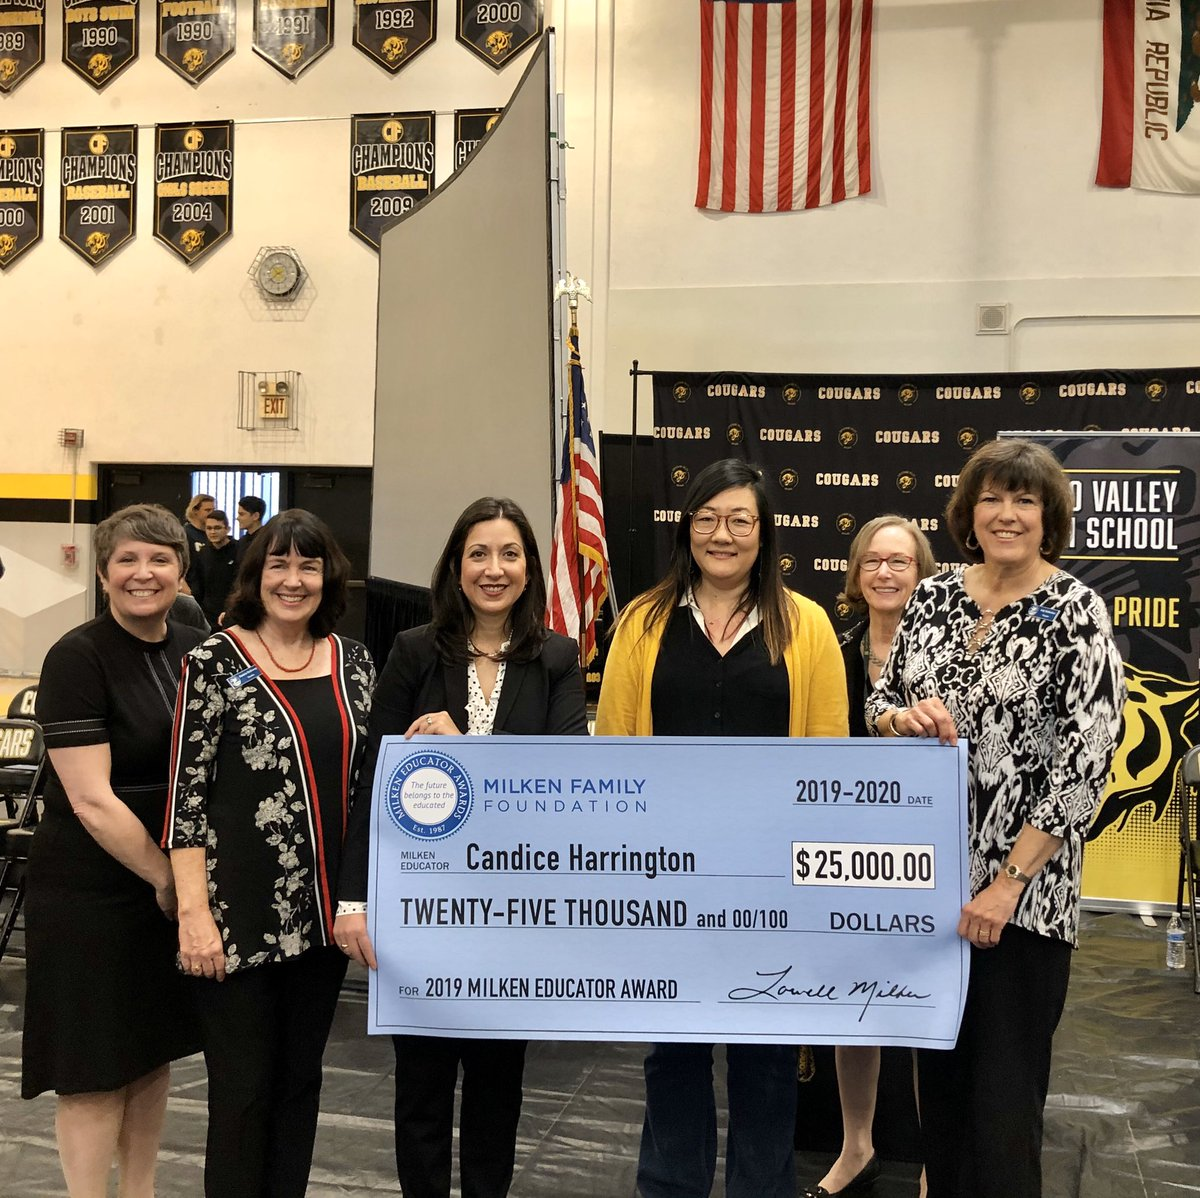 Congratulations to Mrs. Candice Harrington! The @capovalleyhs math teacher was presented with the @milken #MilkenAward and $25,000 during a surprise assembly this morning! <br>http://pic.twitter.com/Fqji5wjvAj